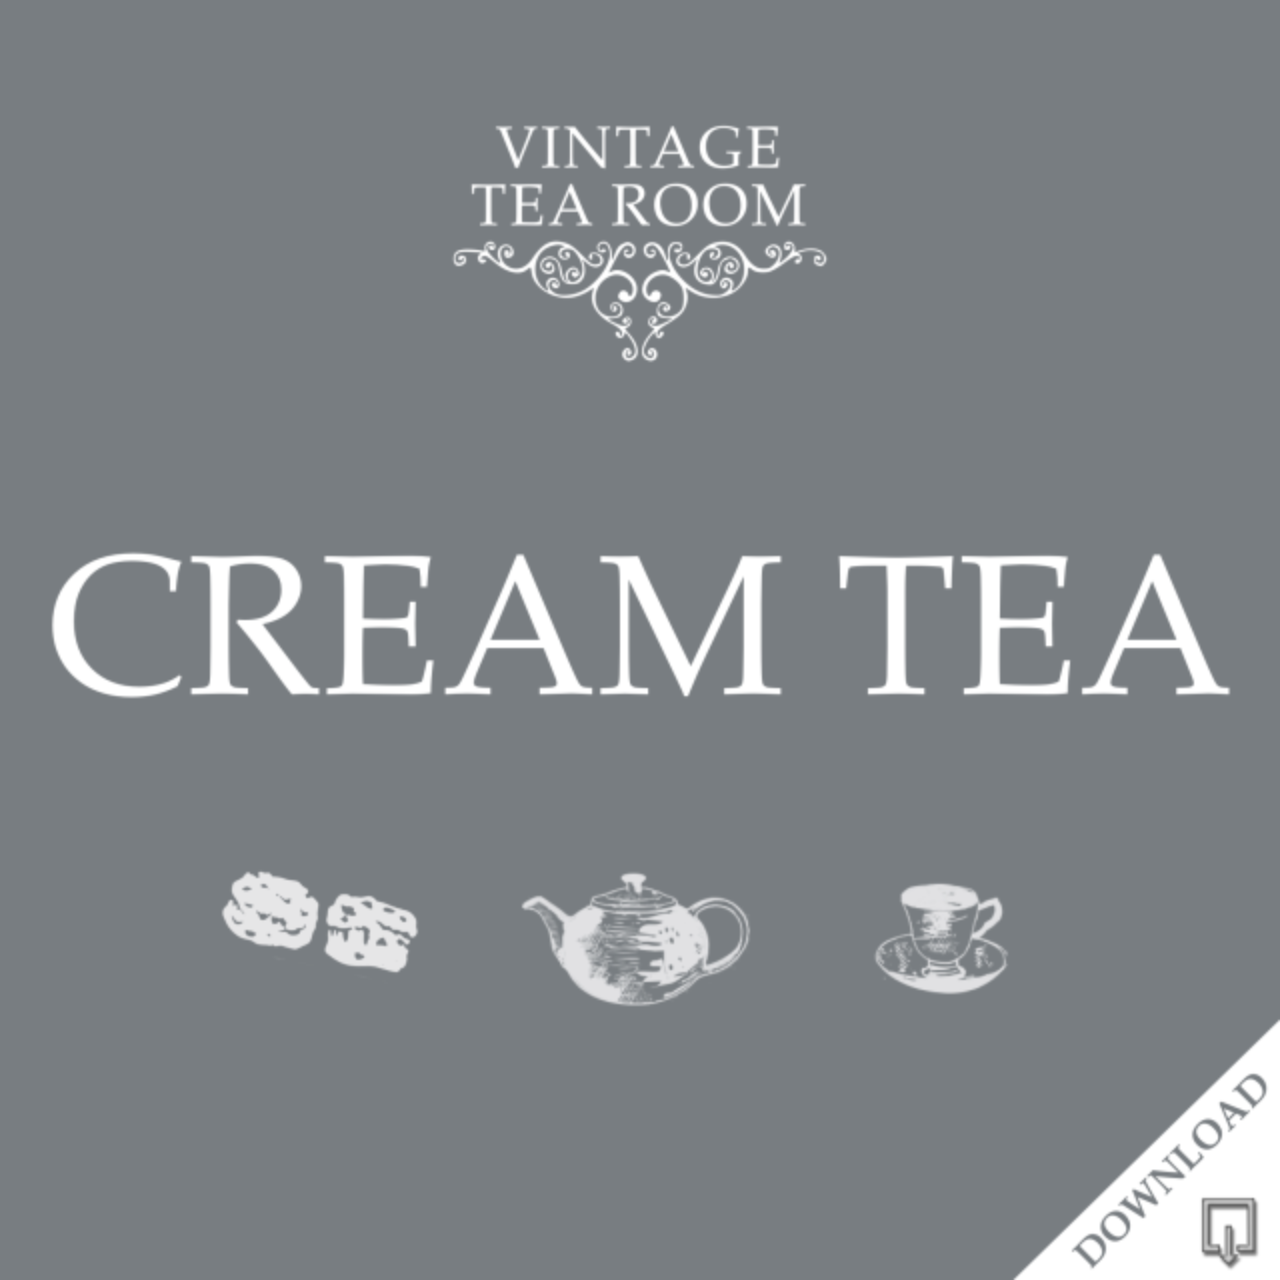 Vintage Cream Tea For Three - Downloadable Voucher